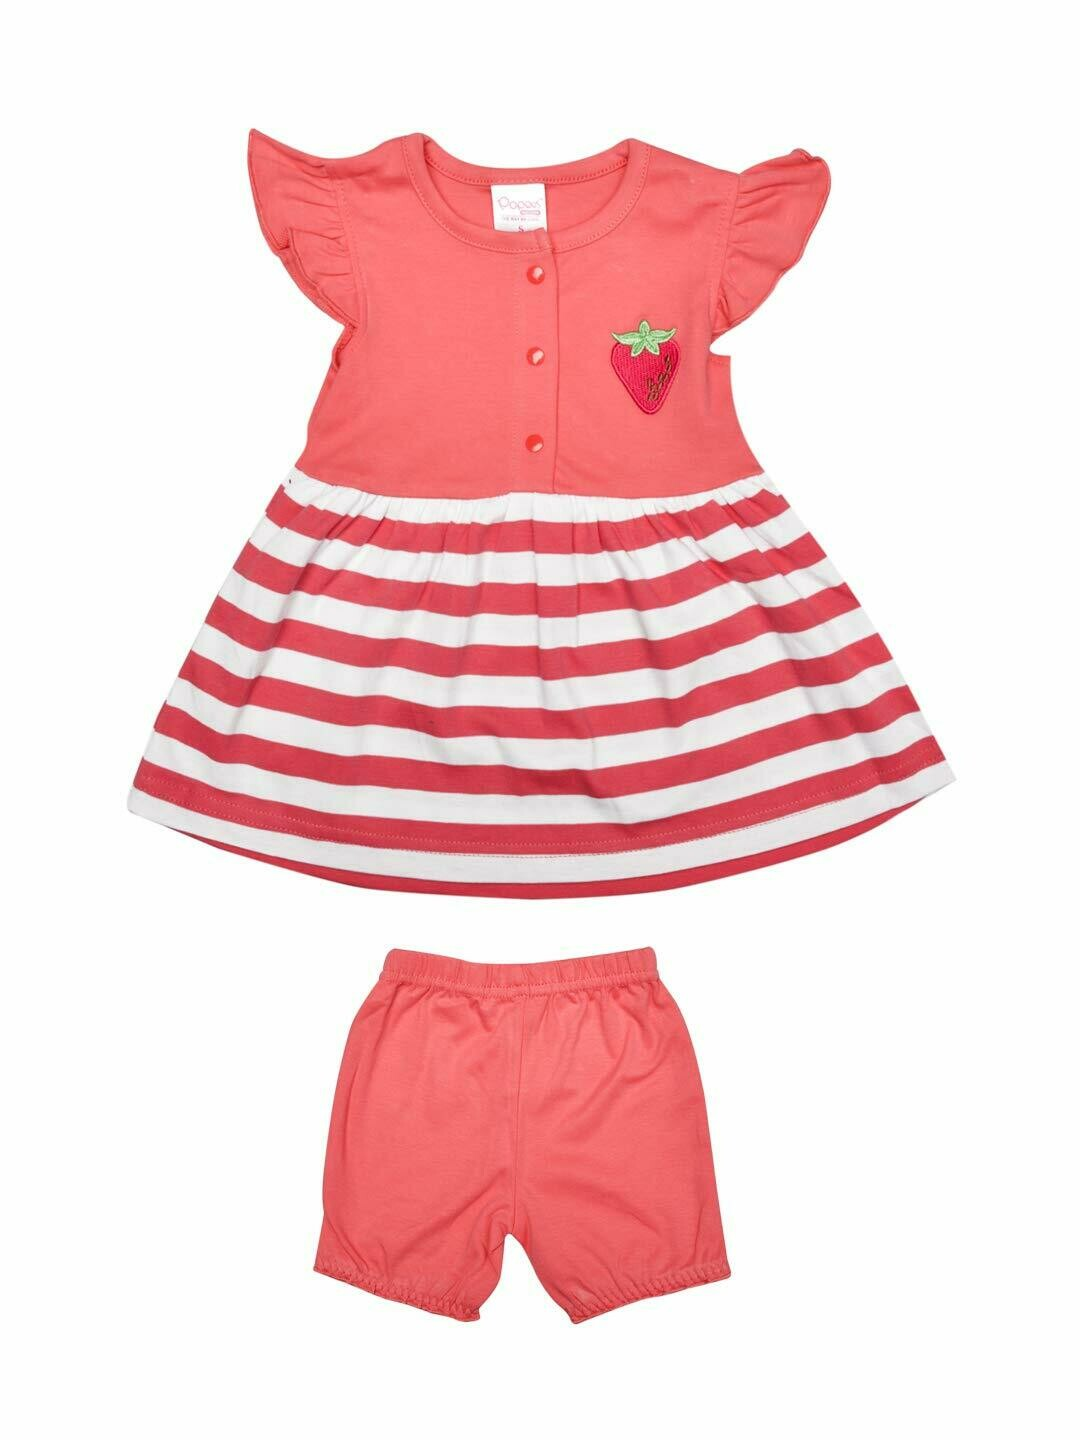 Margot Corel Cap Sleeves Round Neck Striped Frock with Shorts L (12-18 Months)